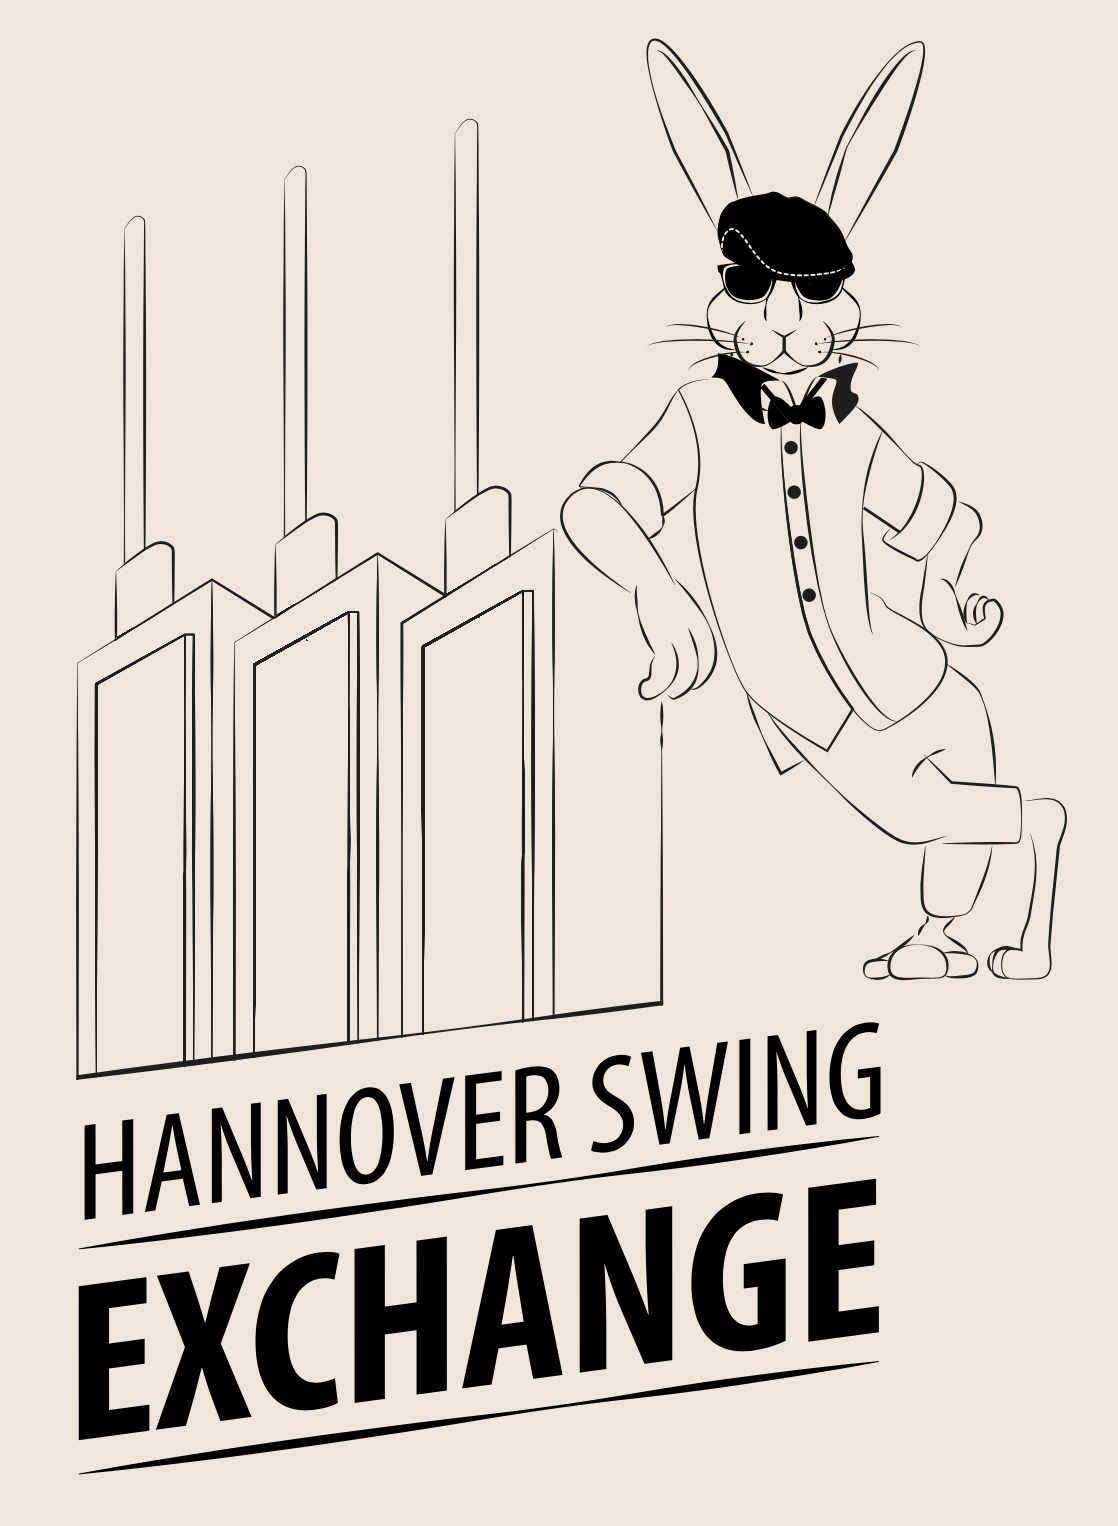 Hannover Swing Exchange